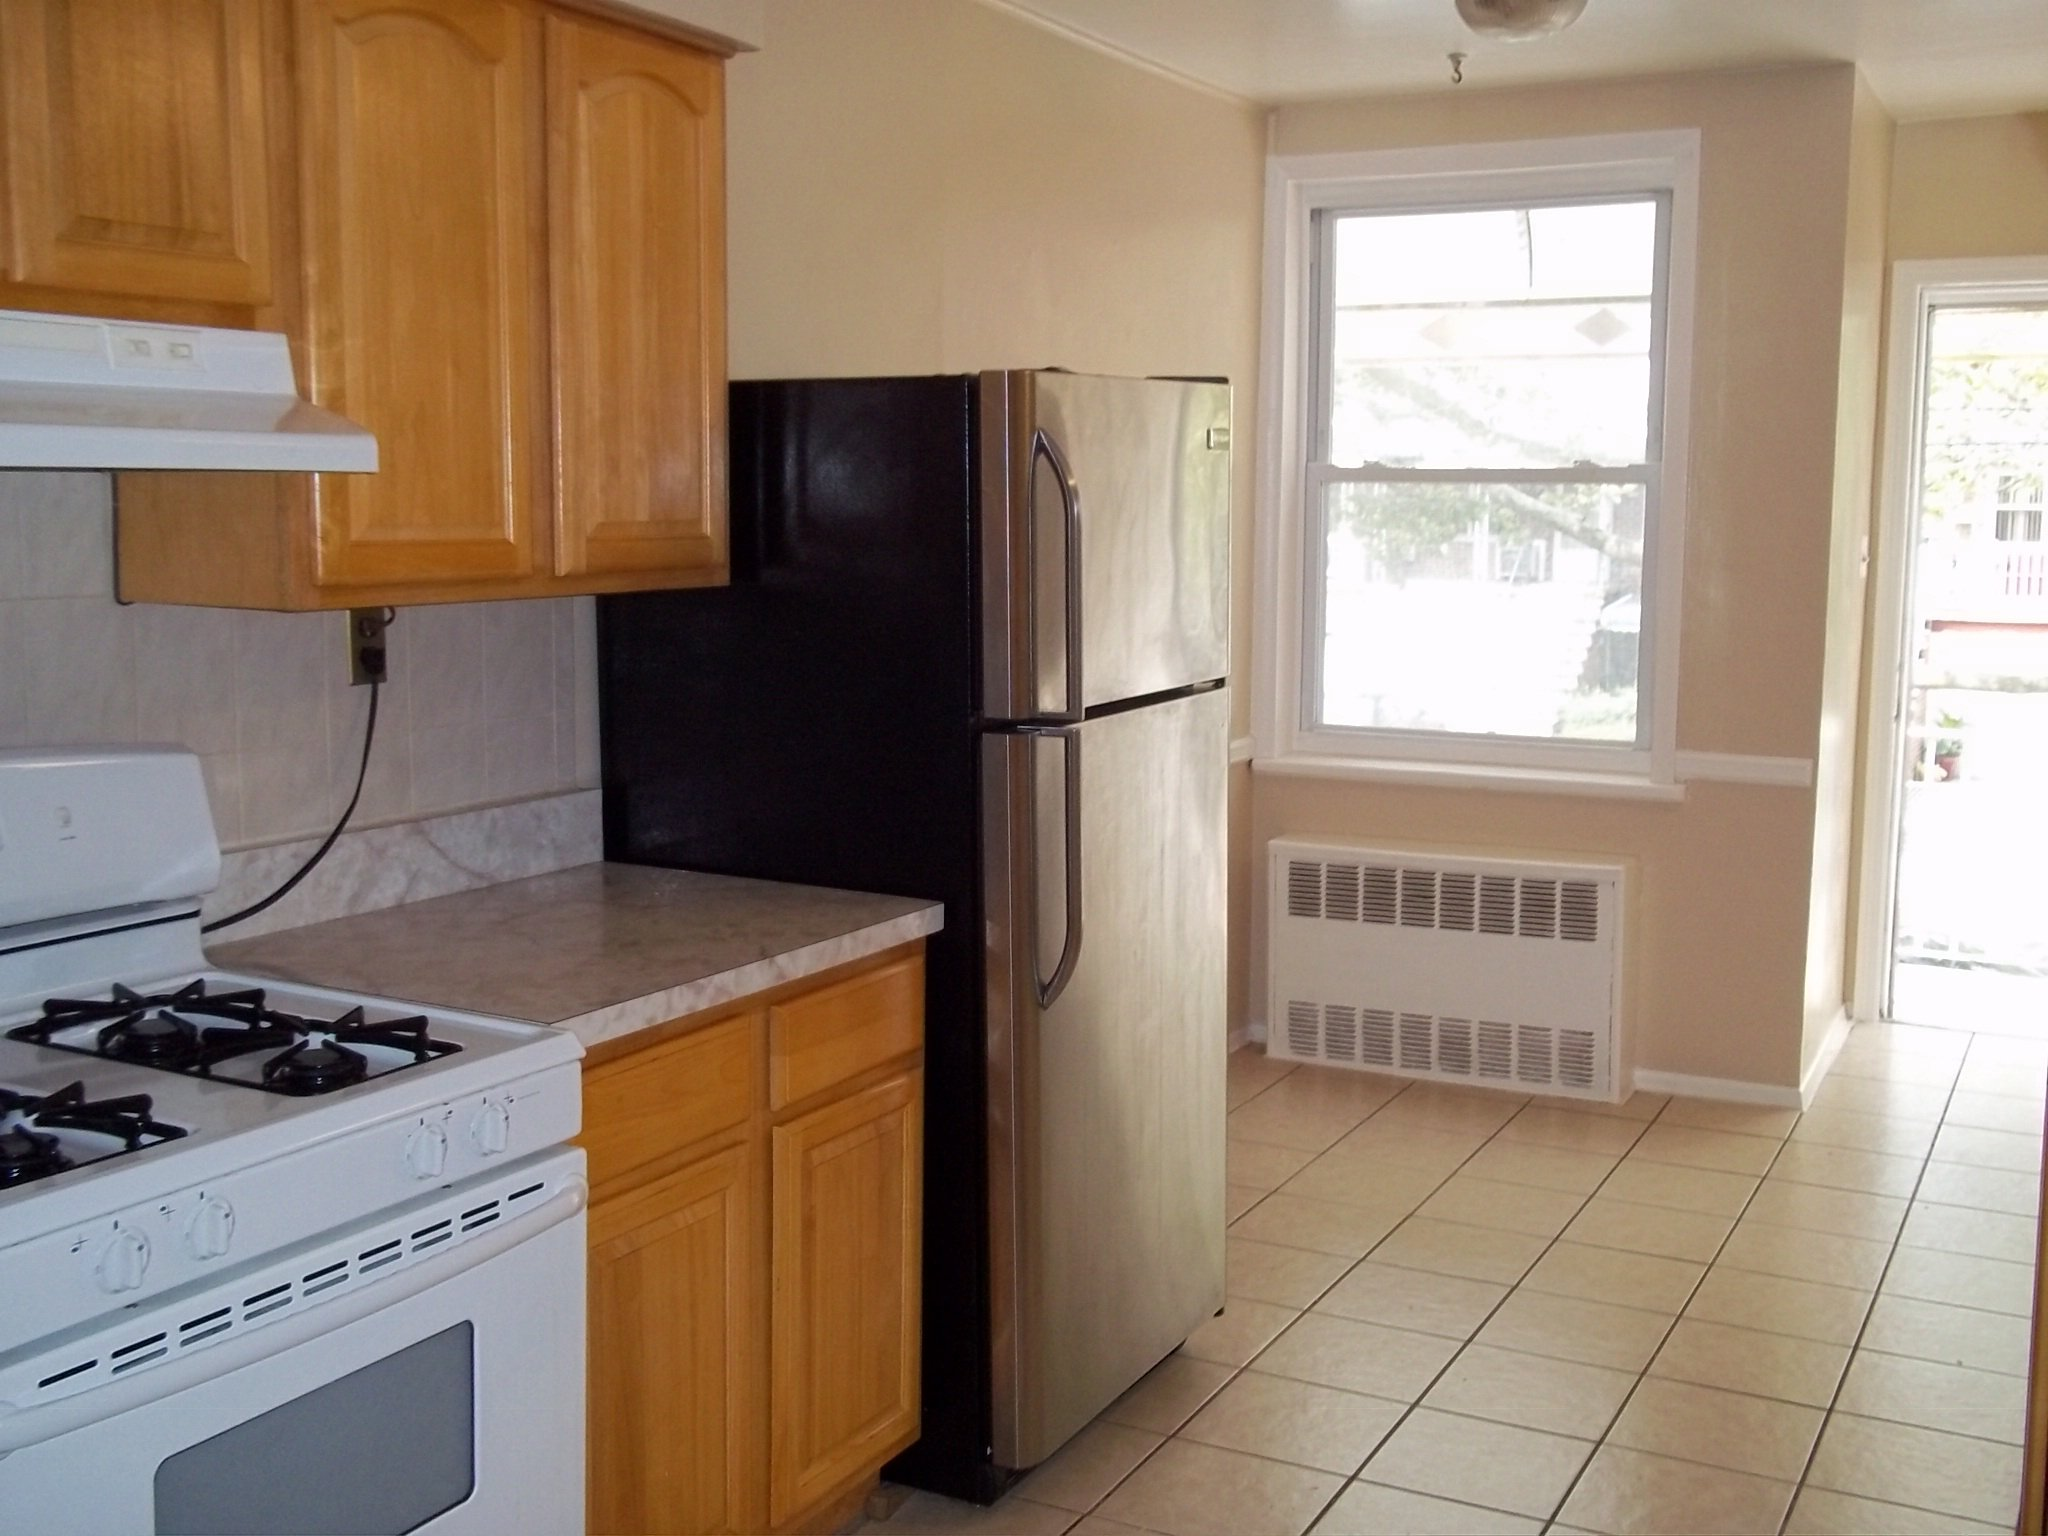 Apartment For Rent In Canarsie Brooklyn